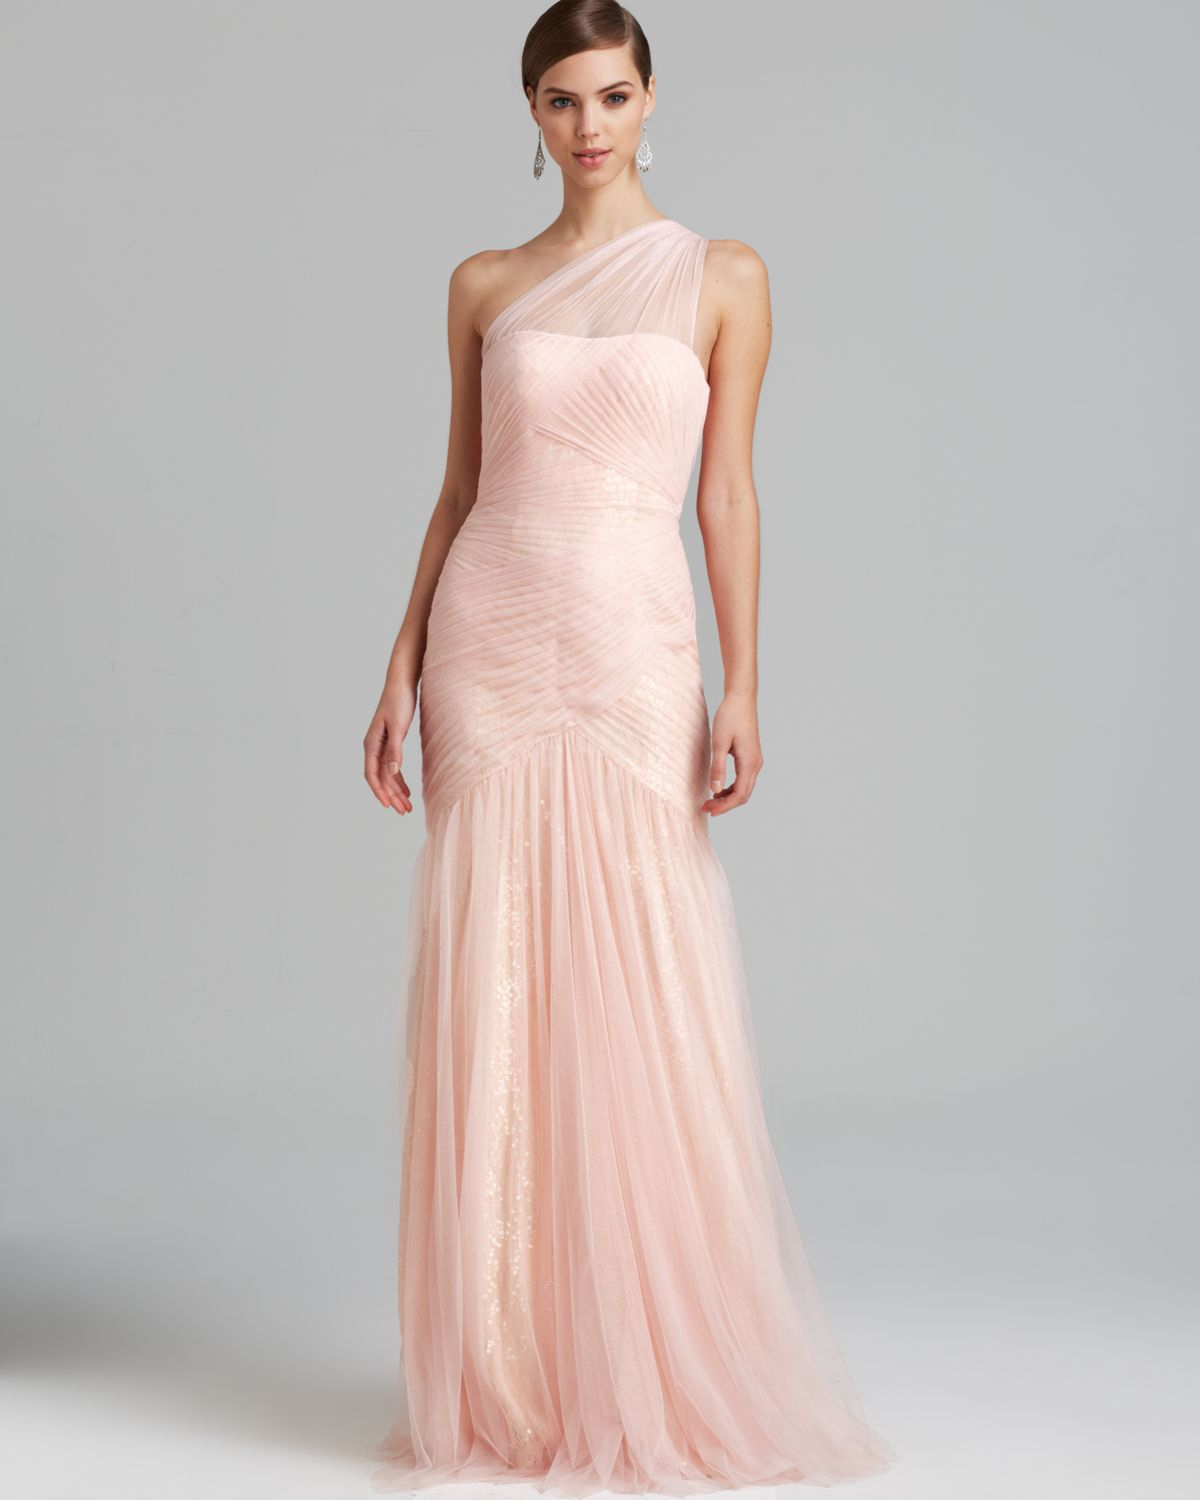 Lyst - Ml Monique Lhuillier Gown One Shoulder Tulle with Sequin ...